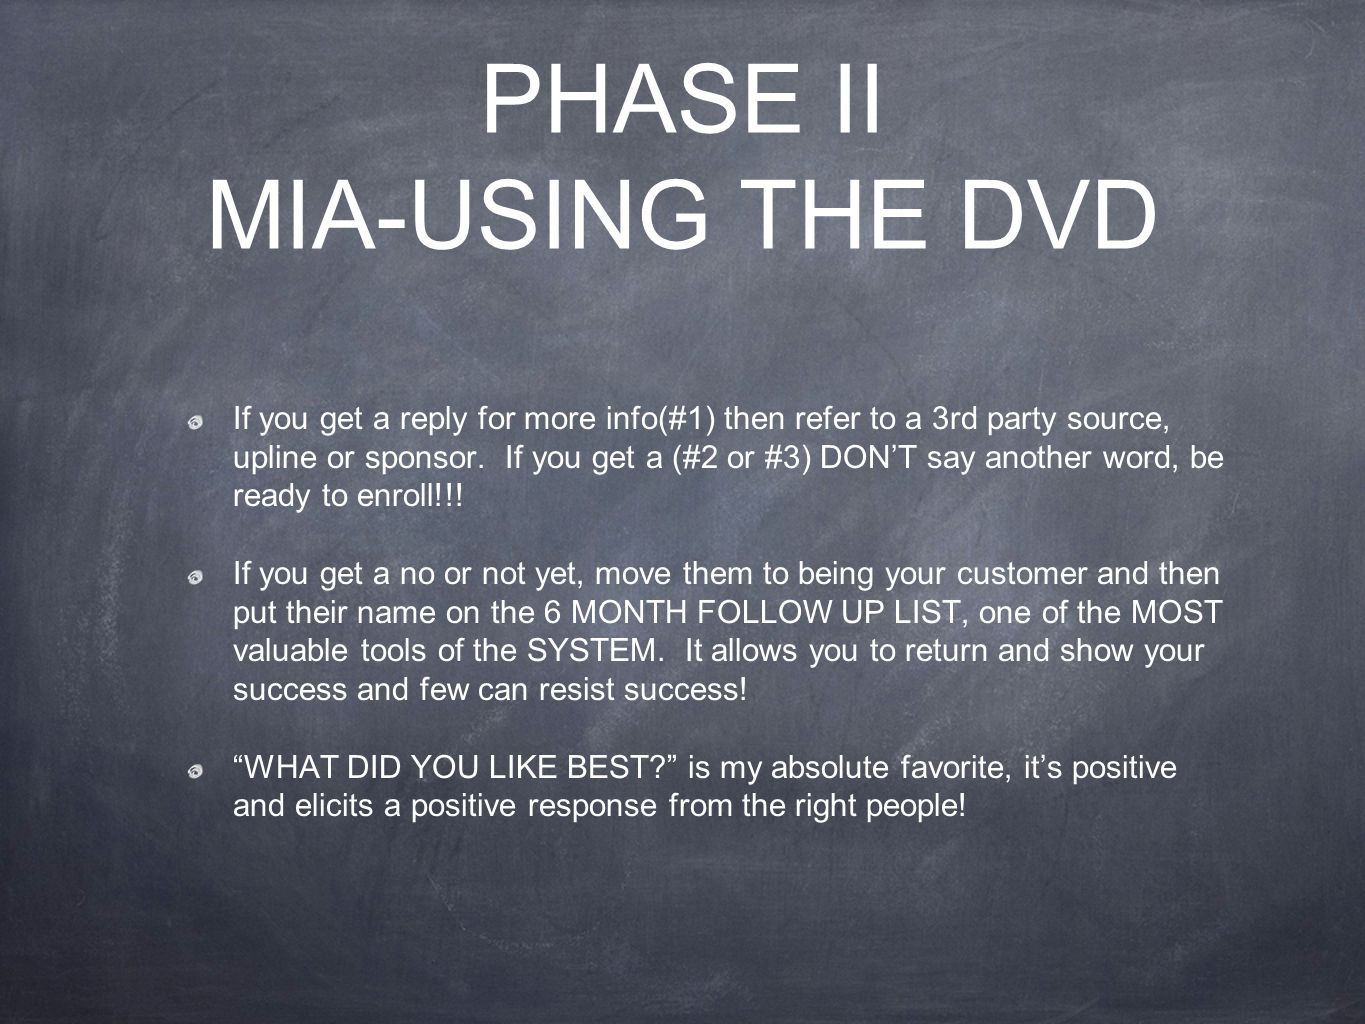 PHASE II MIA-USING THE DVD If you get a reply for more info(#1) then refer to a 3rd party source, upline or sponsor. If you get a (#2 or #3) DON'T say